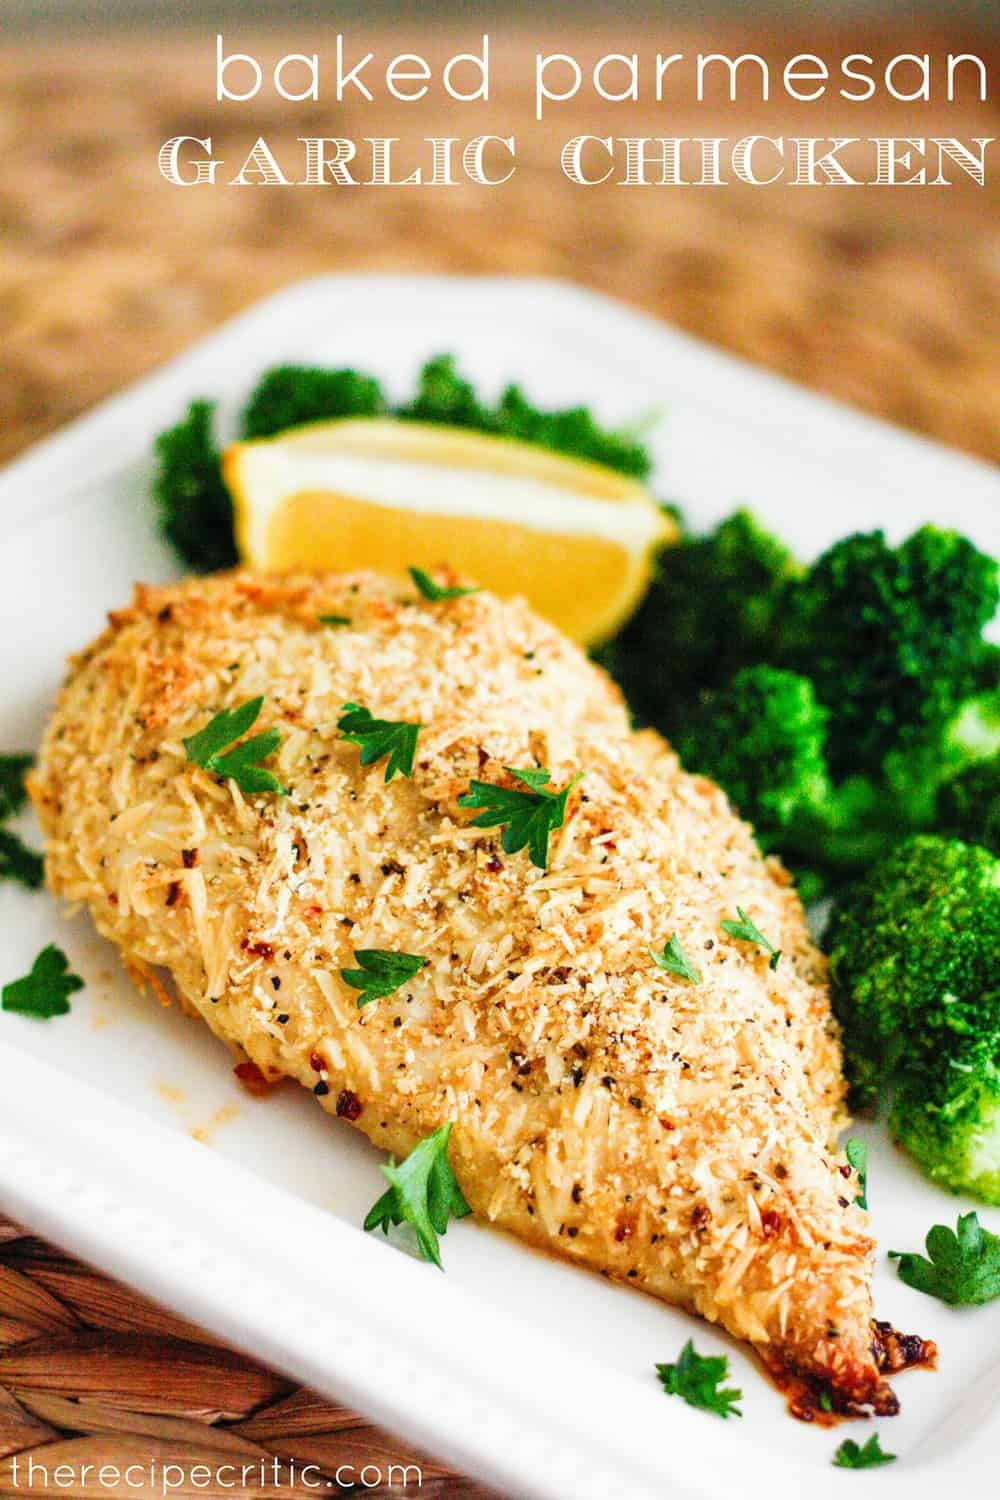 Masterly So A Easy Meal That Everyone Baked Parmesan Garlic Ken Recipe Critic Kenwas Full I Loved How Parmesan Cheese Gave It A Delicious Crust Flavor nice food Baked Parmesan Crusted Chicken